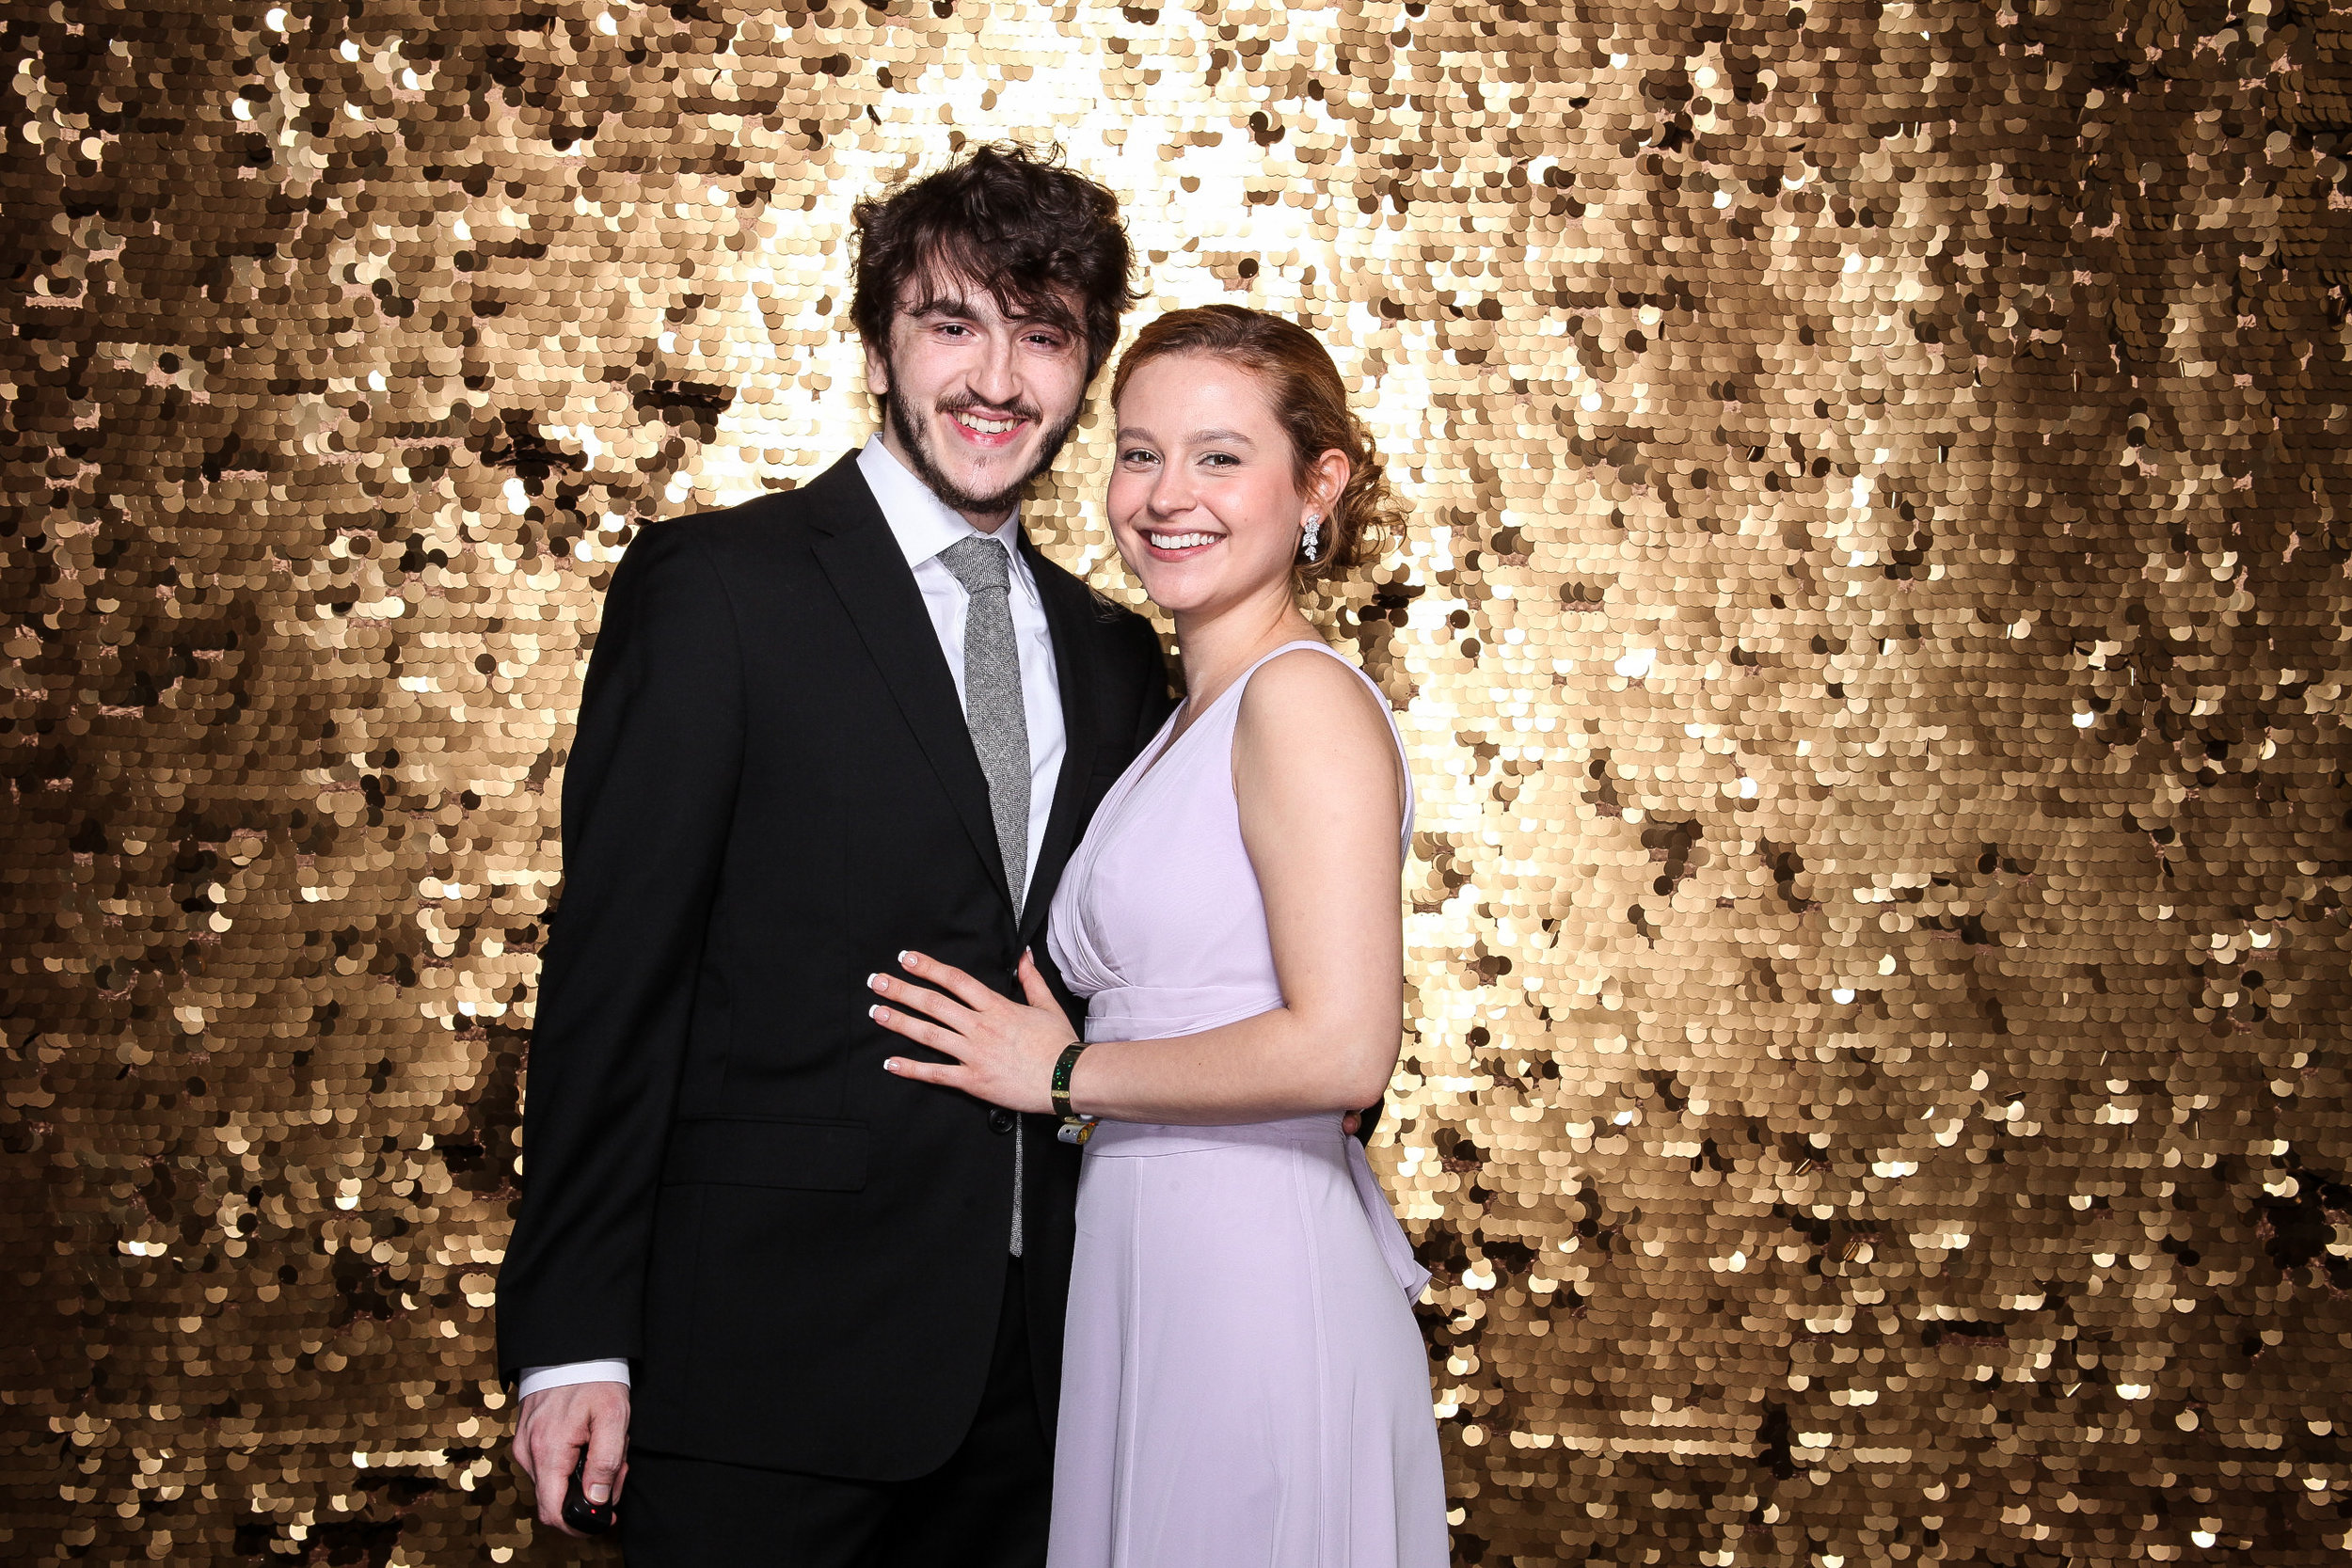 20190503_Adelphi_Senior_Formal-199.jpg